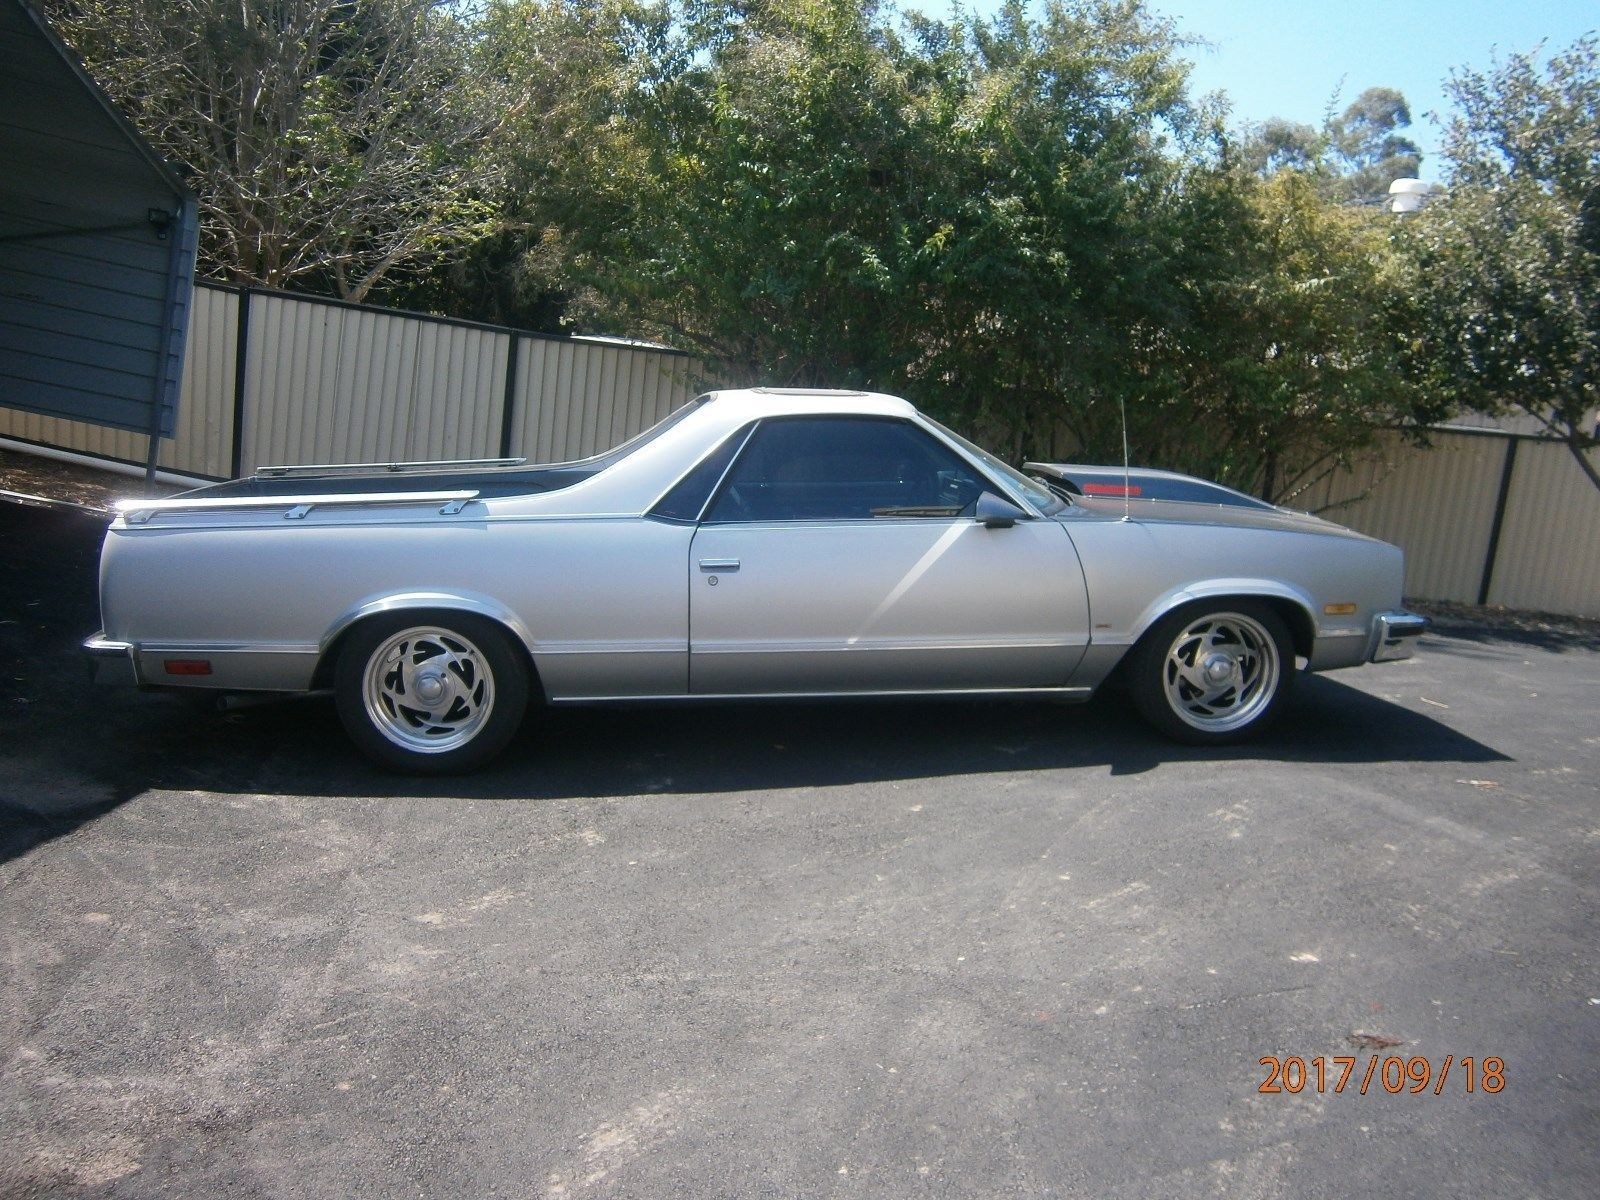 1980s Rhd Chevrolet El Camino There S A Few Of These In Australia